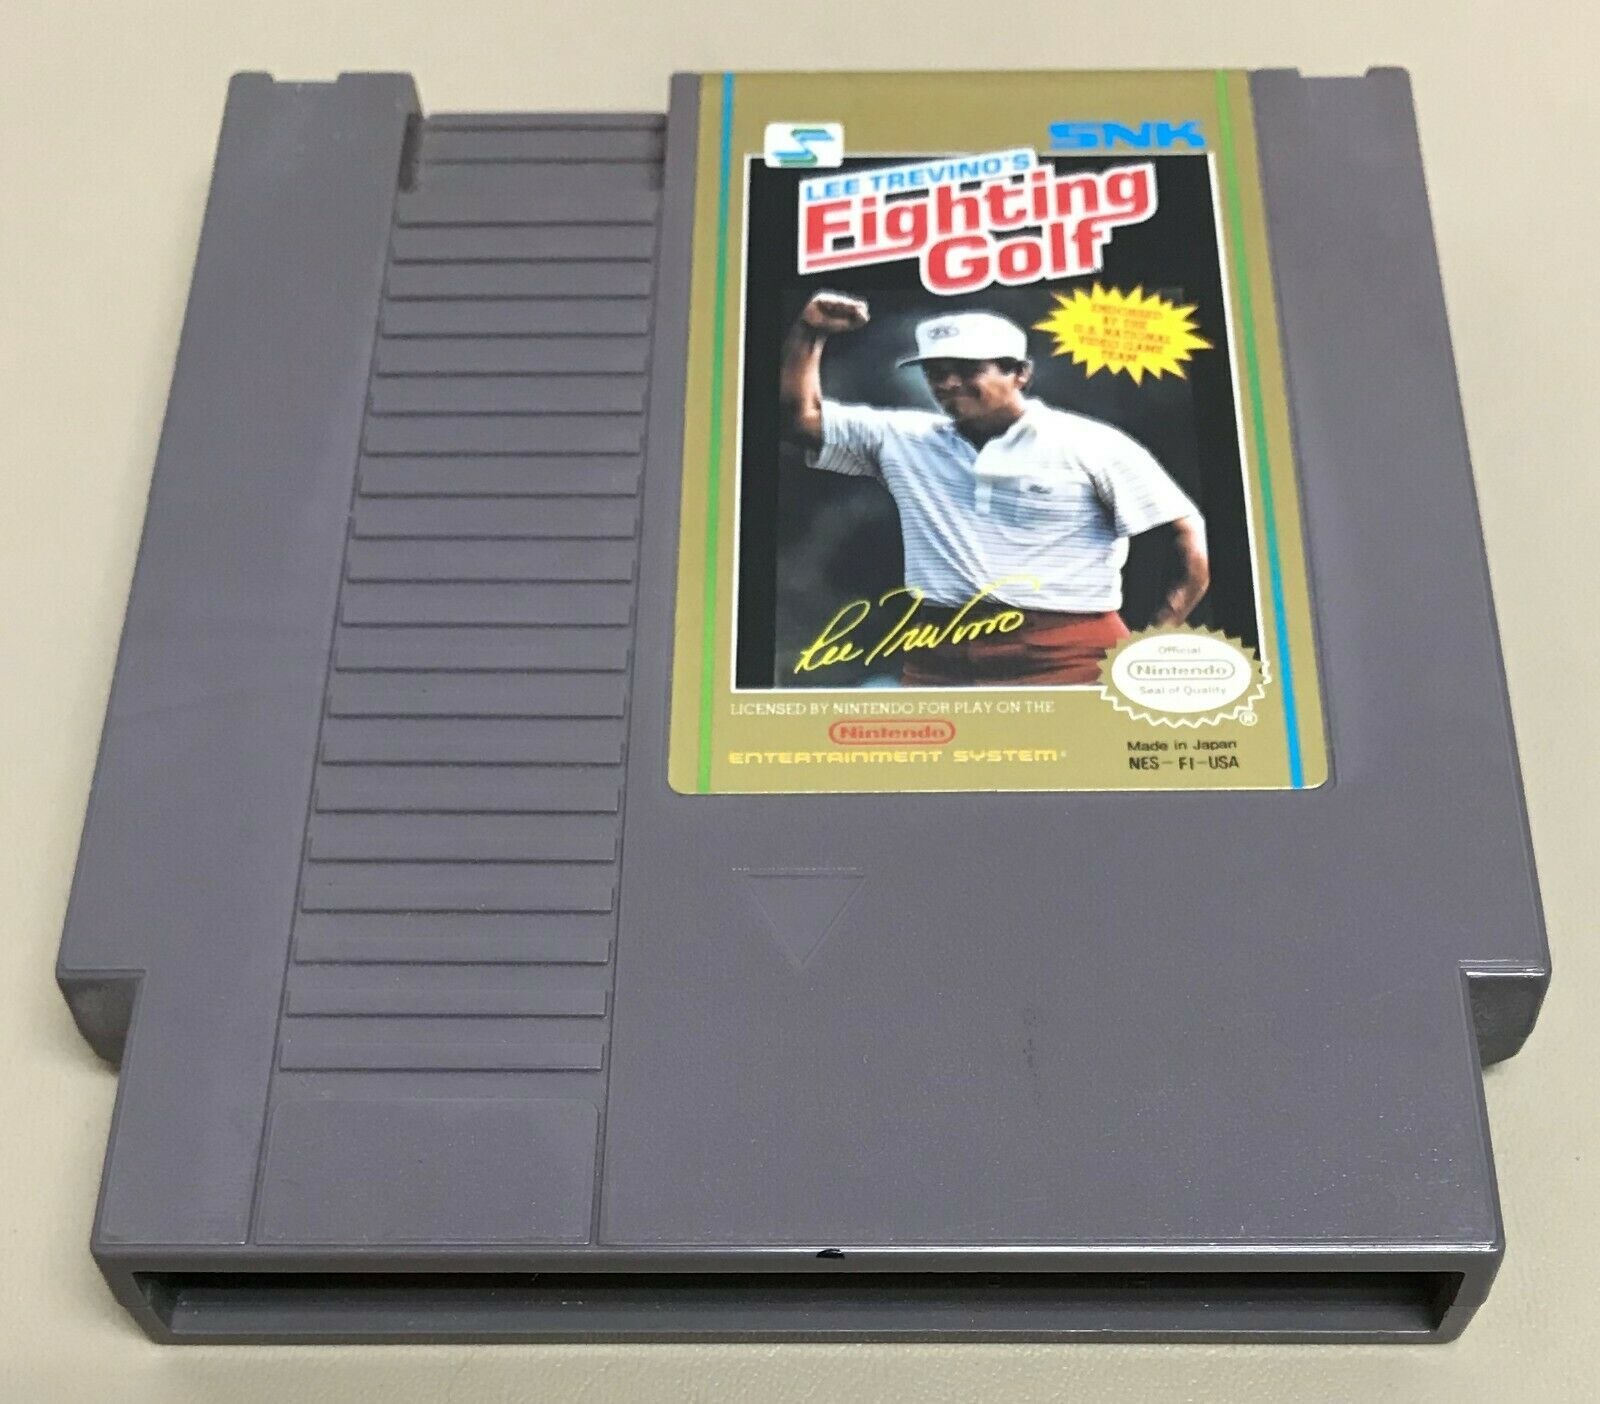 Gotcha! The Sport!, Anticipation, Fighting Golf : 3 NES Sports Game Lot Nintendo image 5